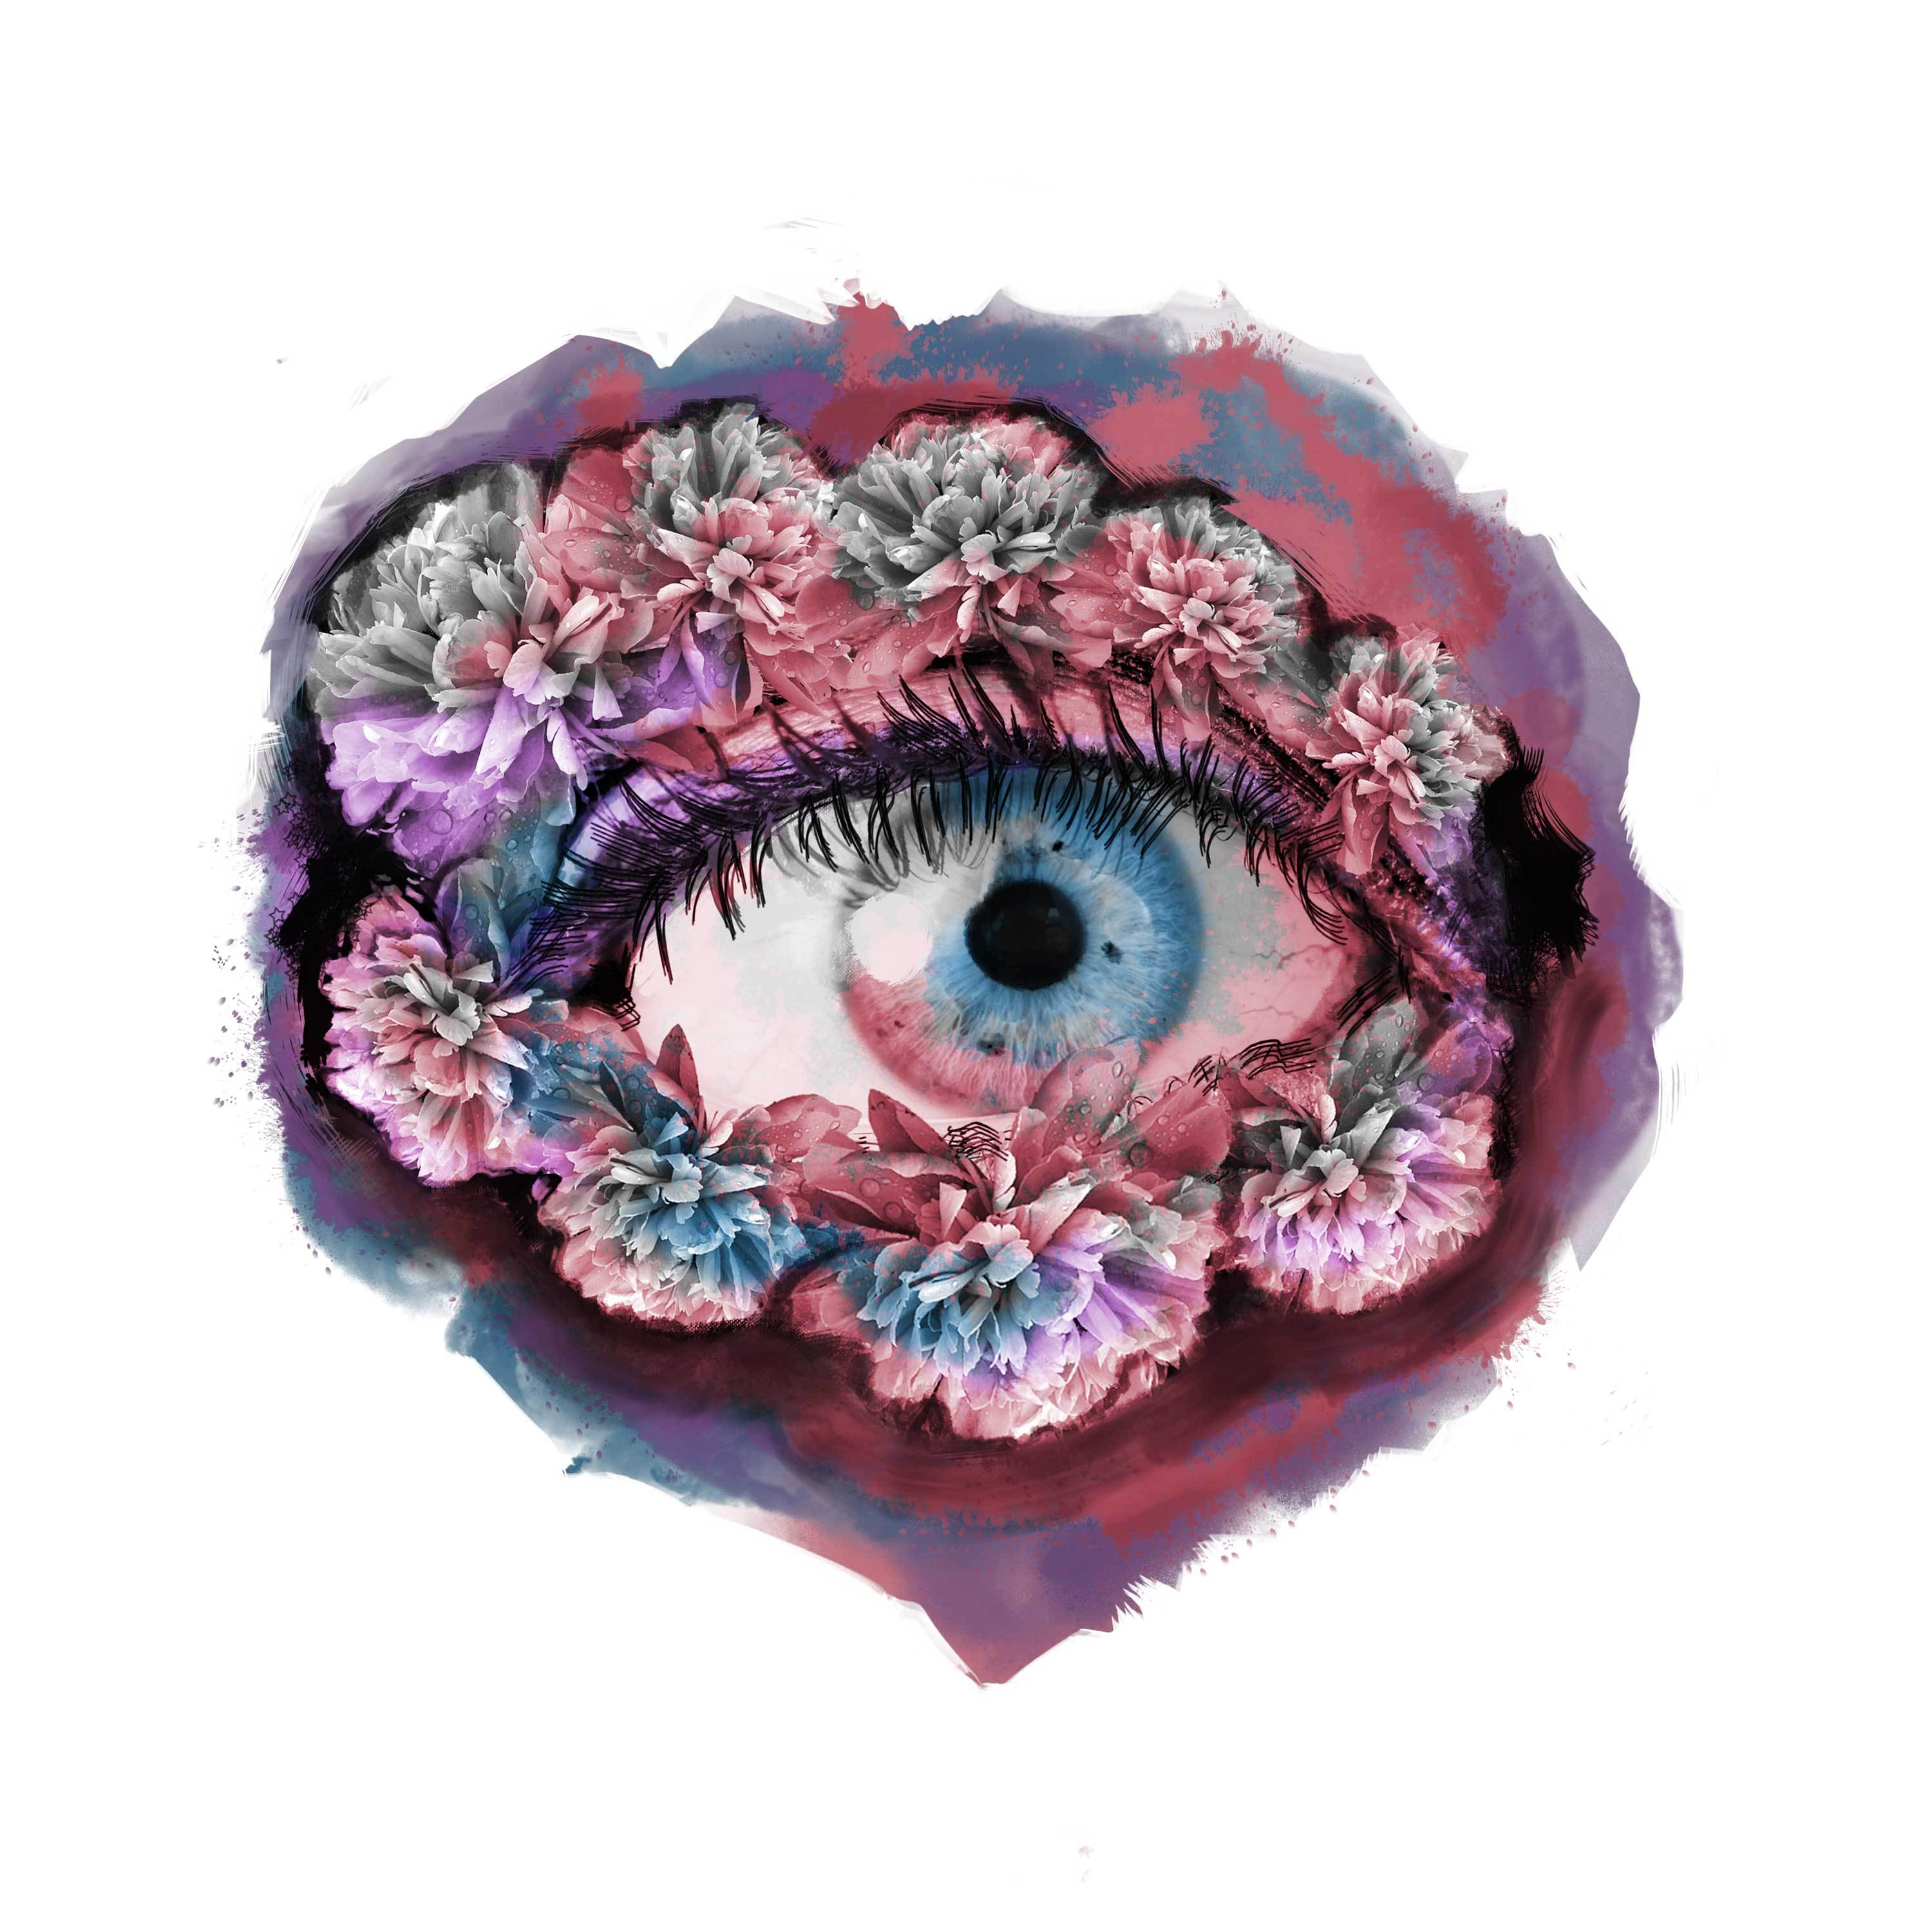 Abstract Eye of Flower Design InkDaze_JoseBorromeo